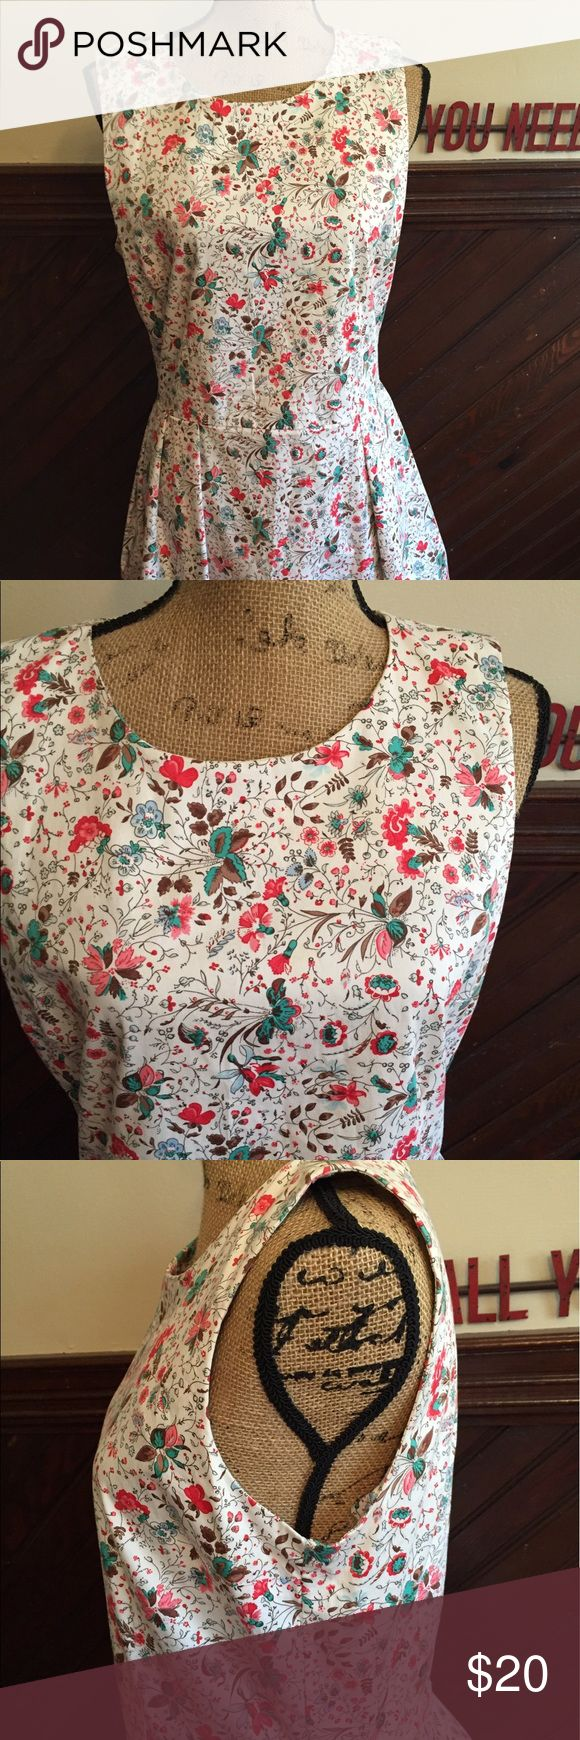 Fun and flirty dress with small flowers Love this because it's fun and bouncy- great with a pair of cowboy boots- has pockets which are a plus and flares out to accentuate a small waist GAP Dresses